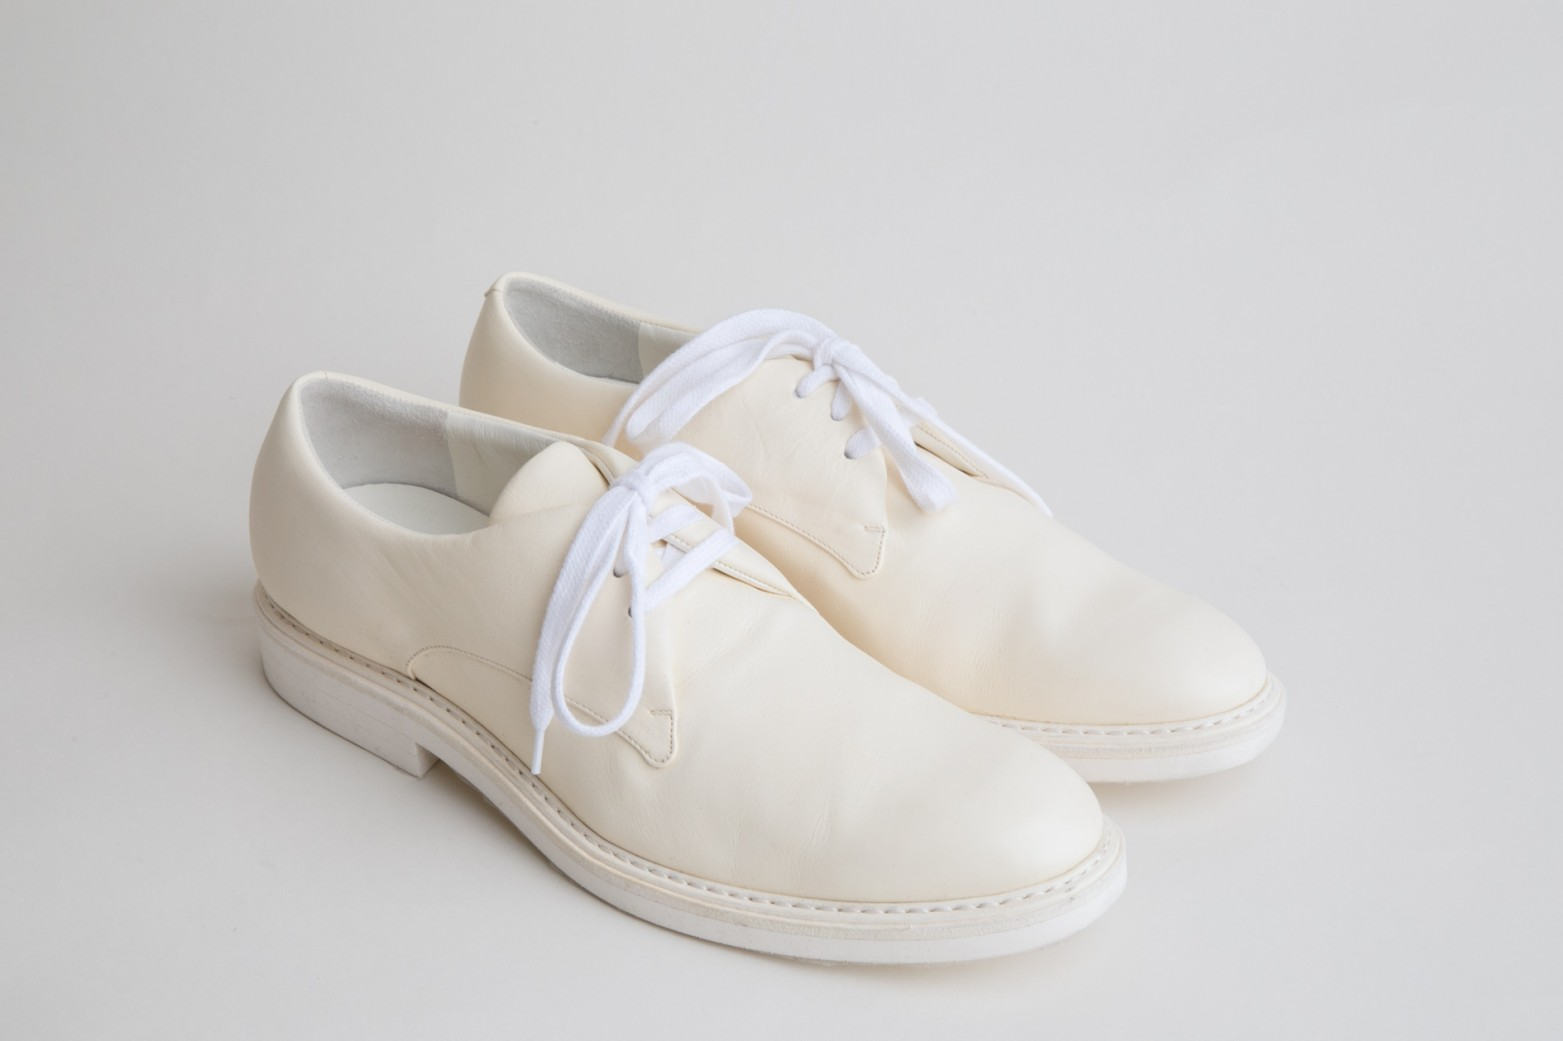 Chloe Derby Shoes